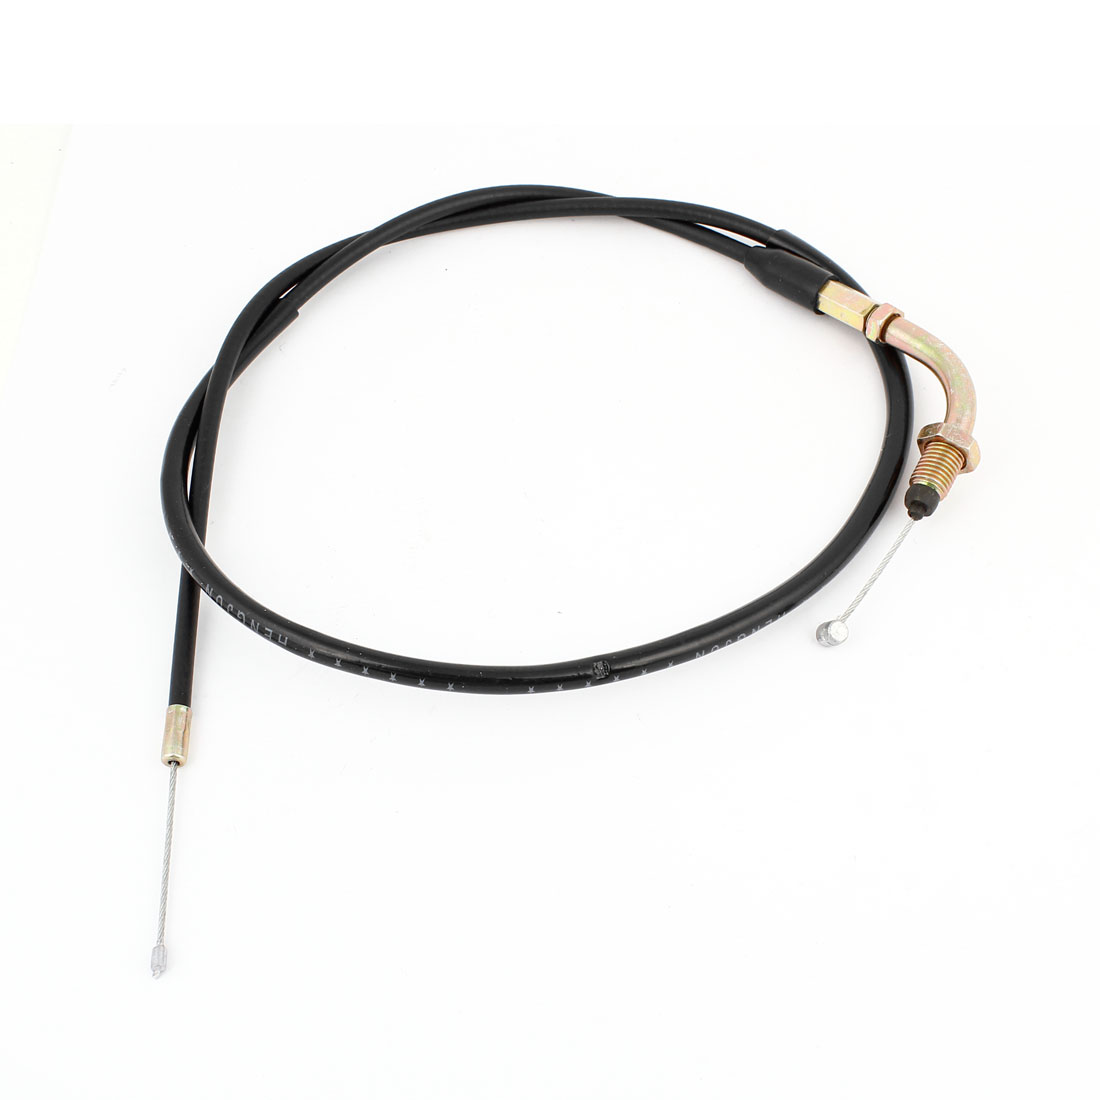 90cm Brake Cable Petrol Gasoline Scooter for Motorcycle